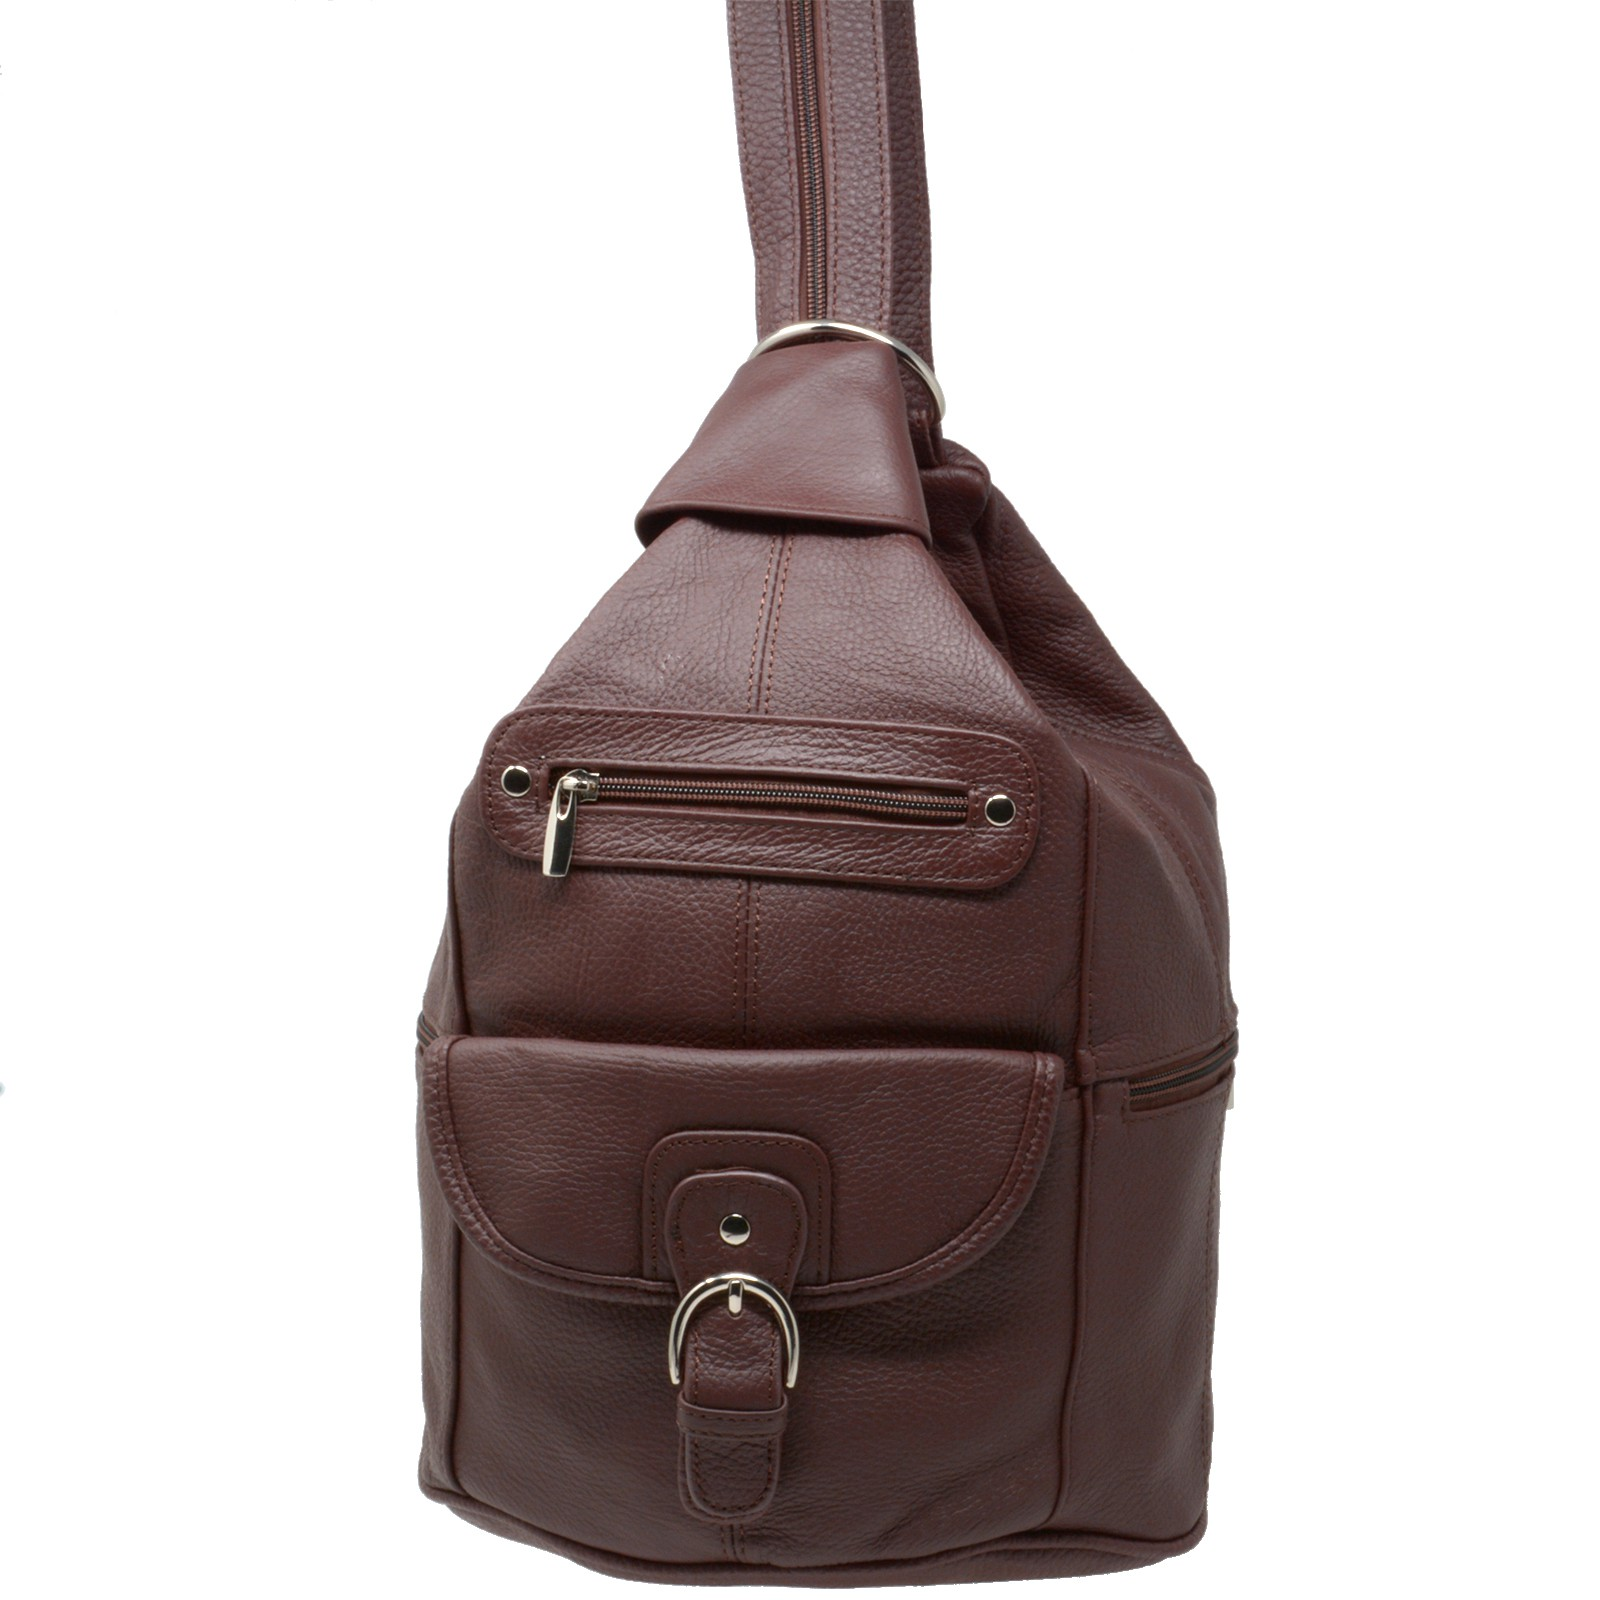 Womens-Leather-Backpack-Purse-Sling-Shoulder-Bag-Handbag-3-in-1-Convertible-New